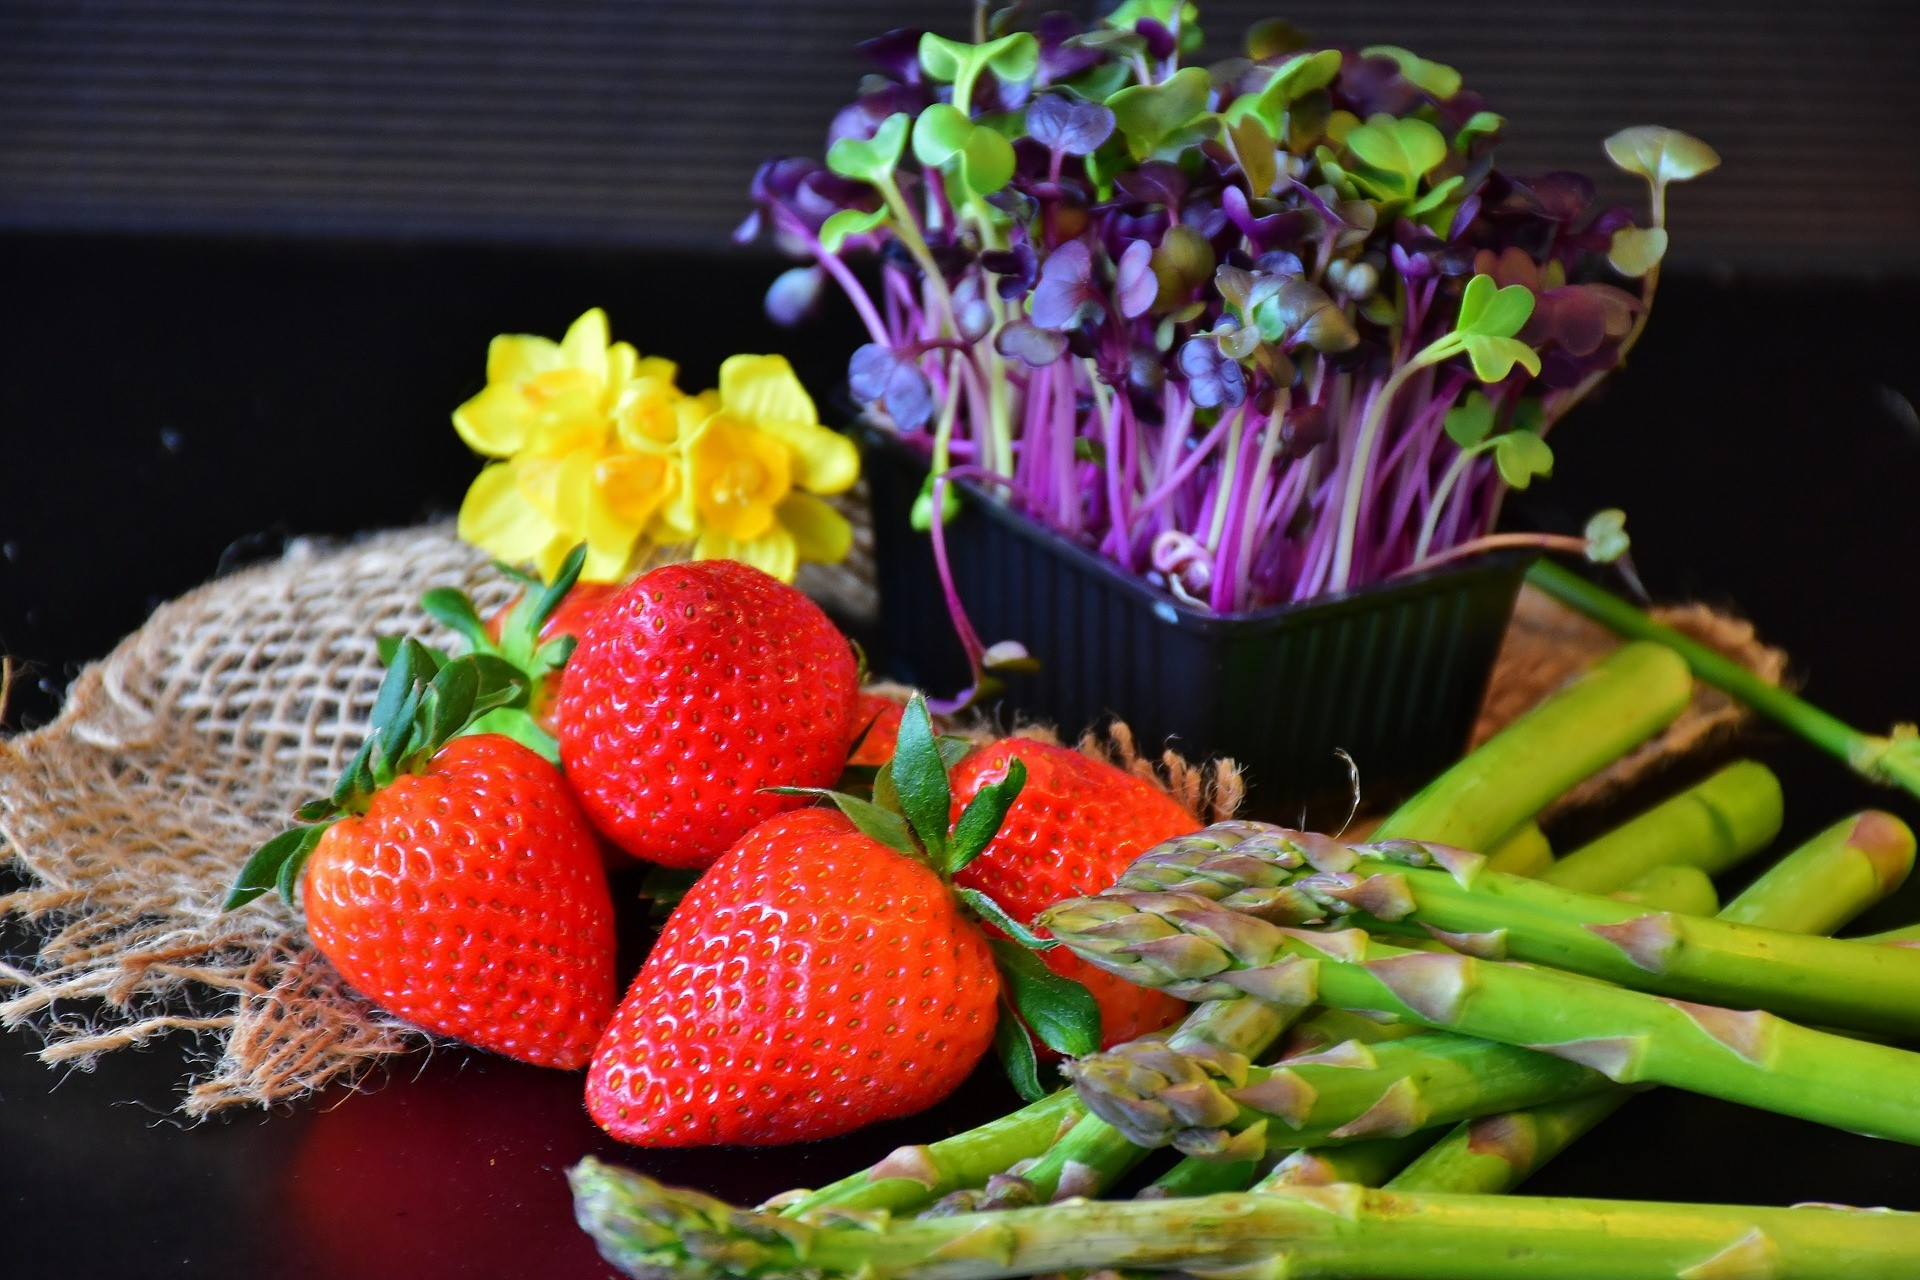 Spring Produce